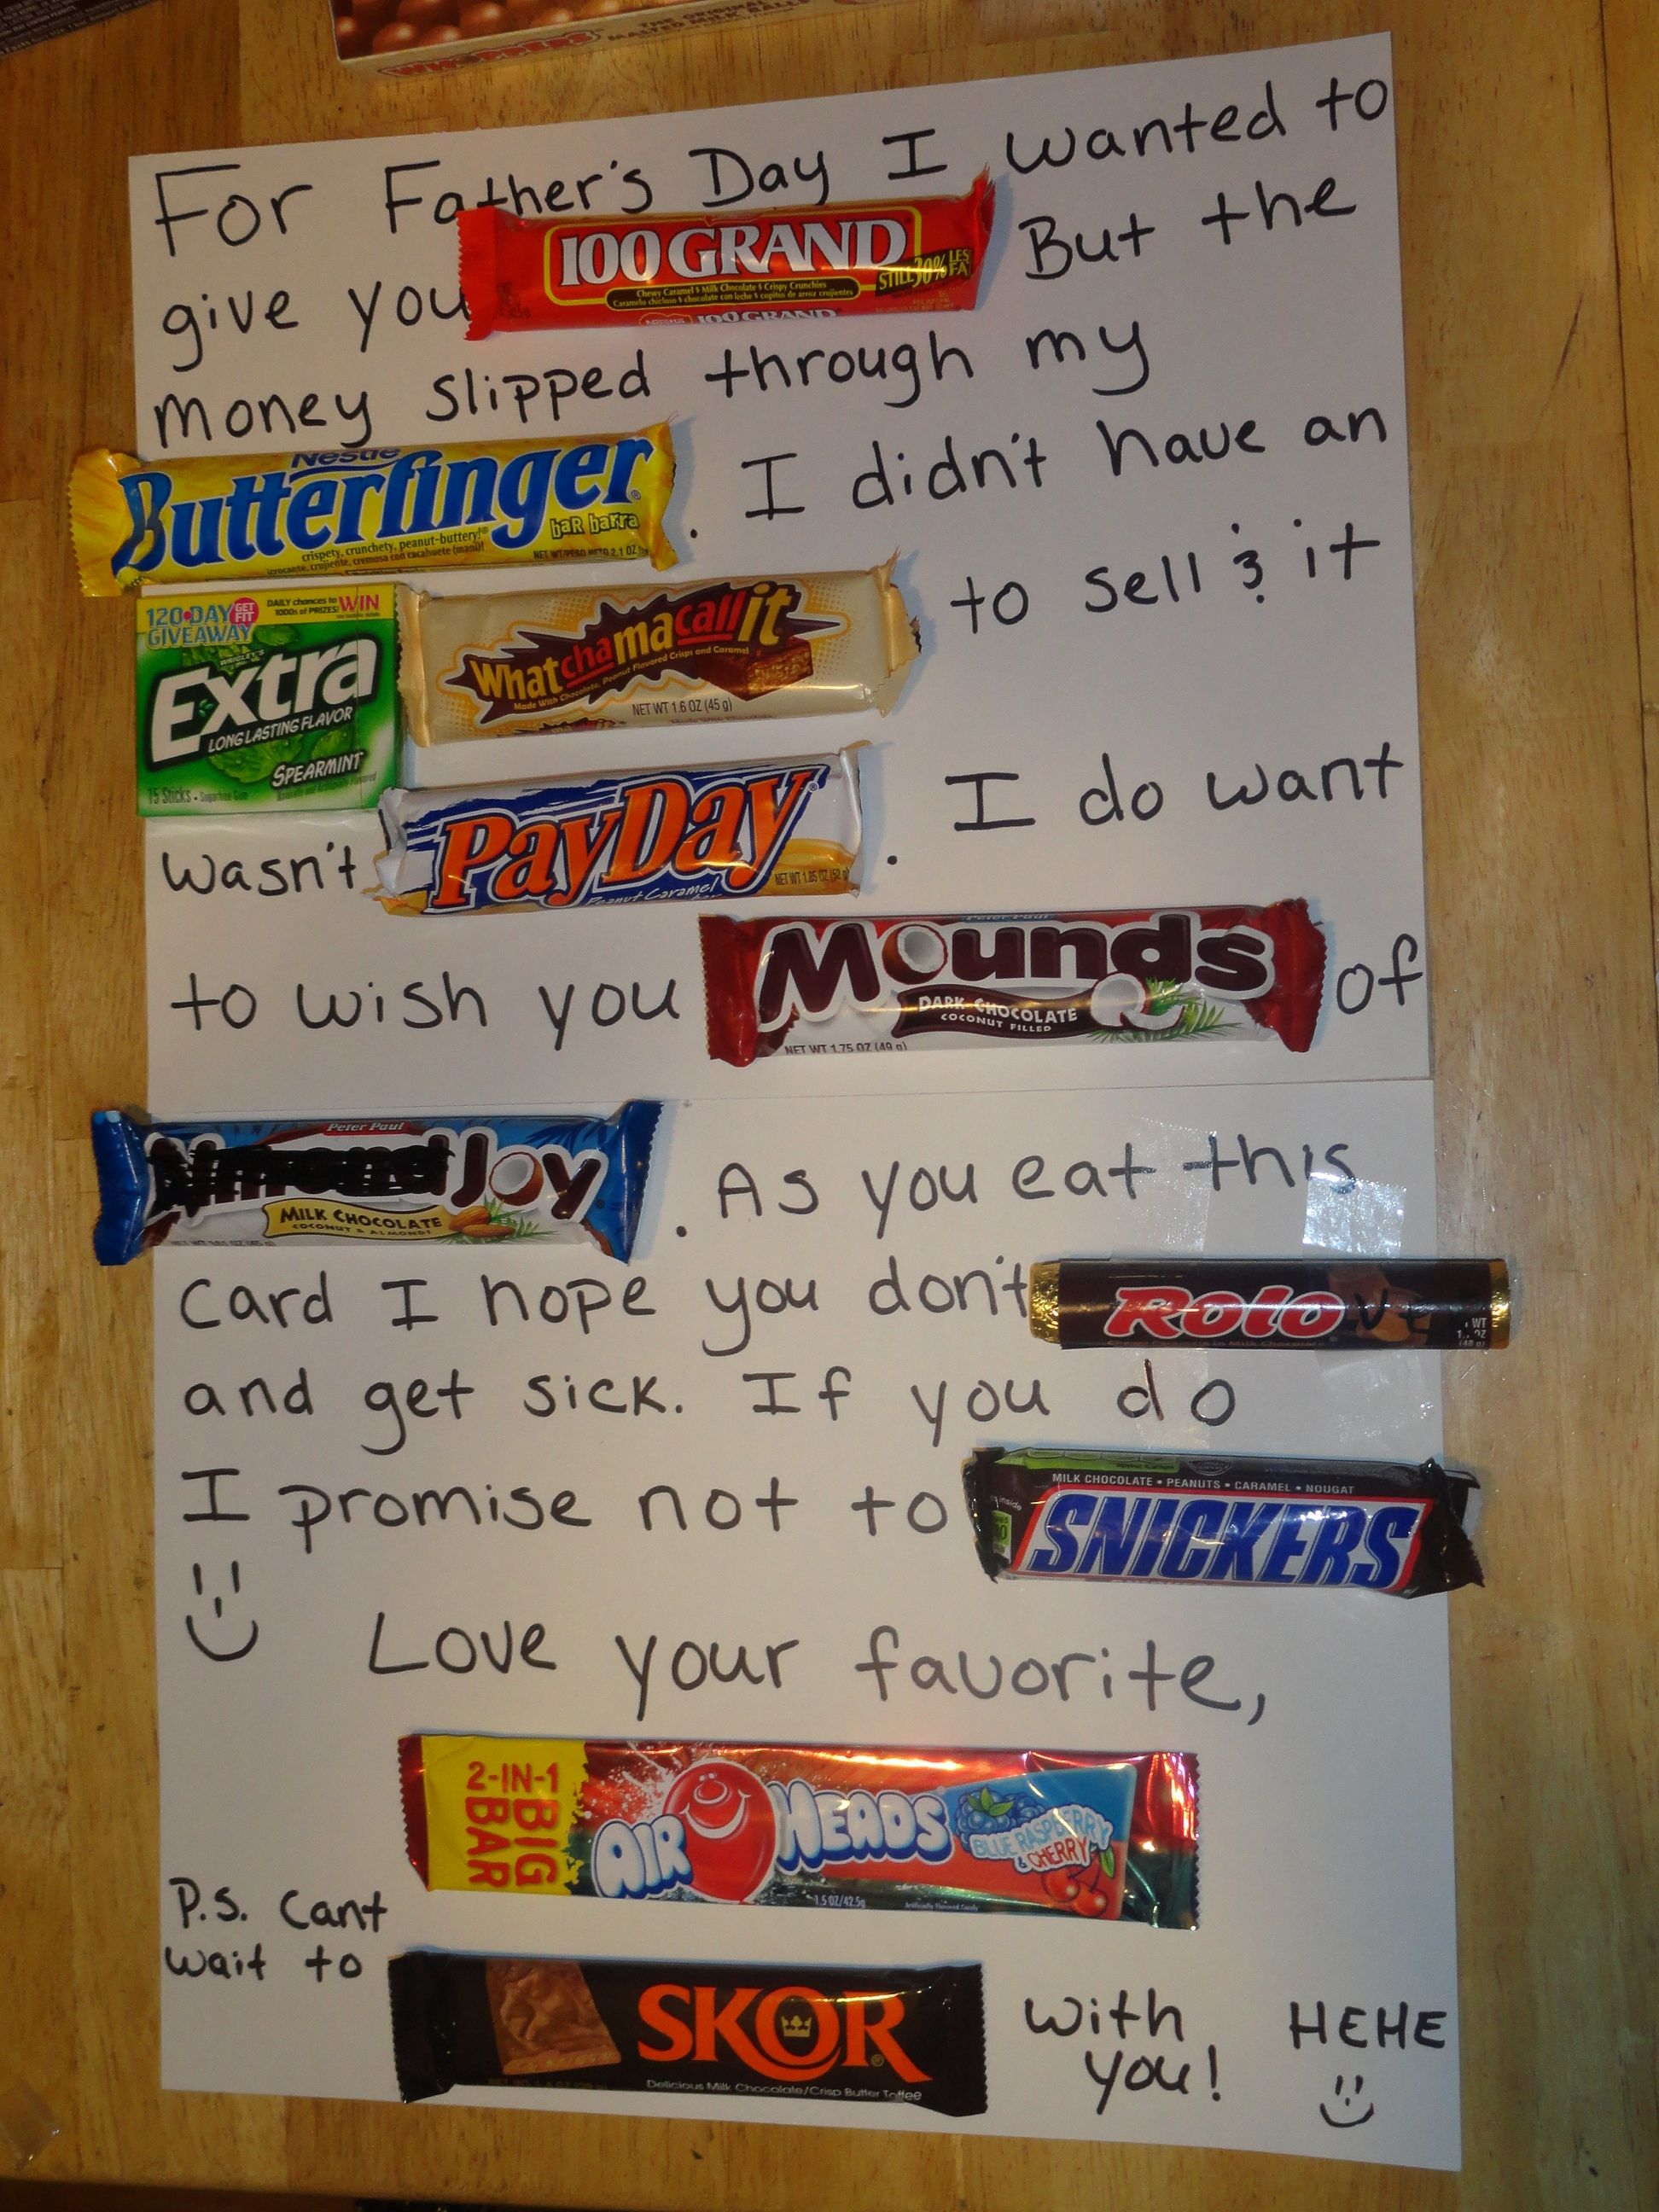 Candy Bar Card For Thank You, Father's/mother's Day